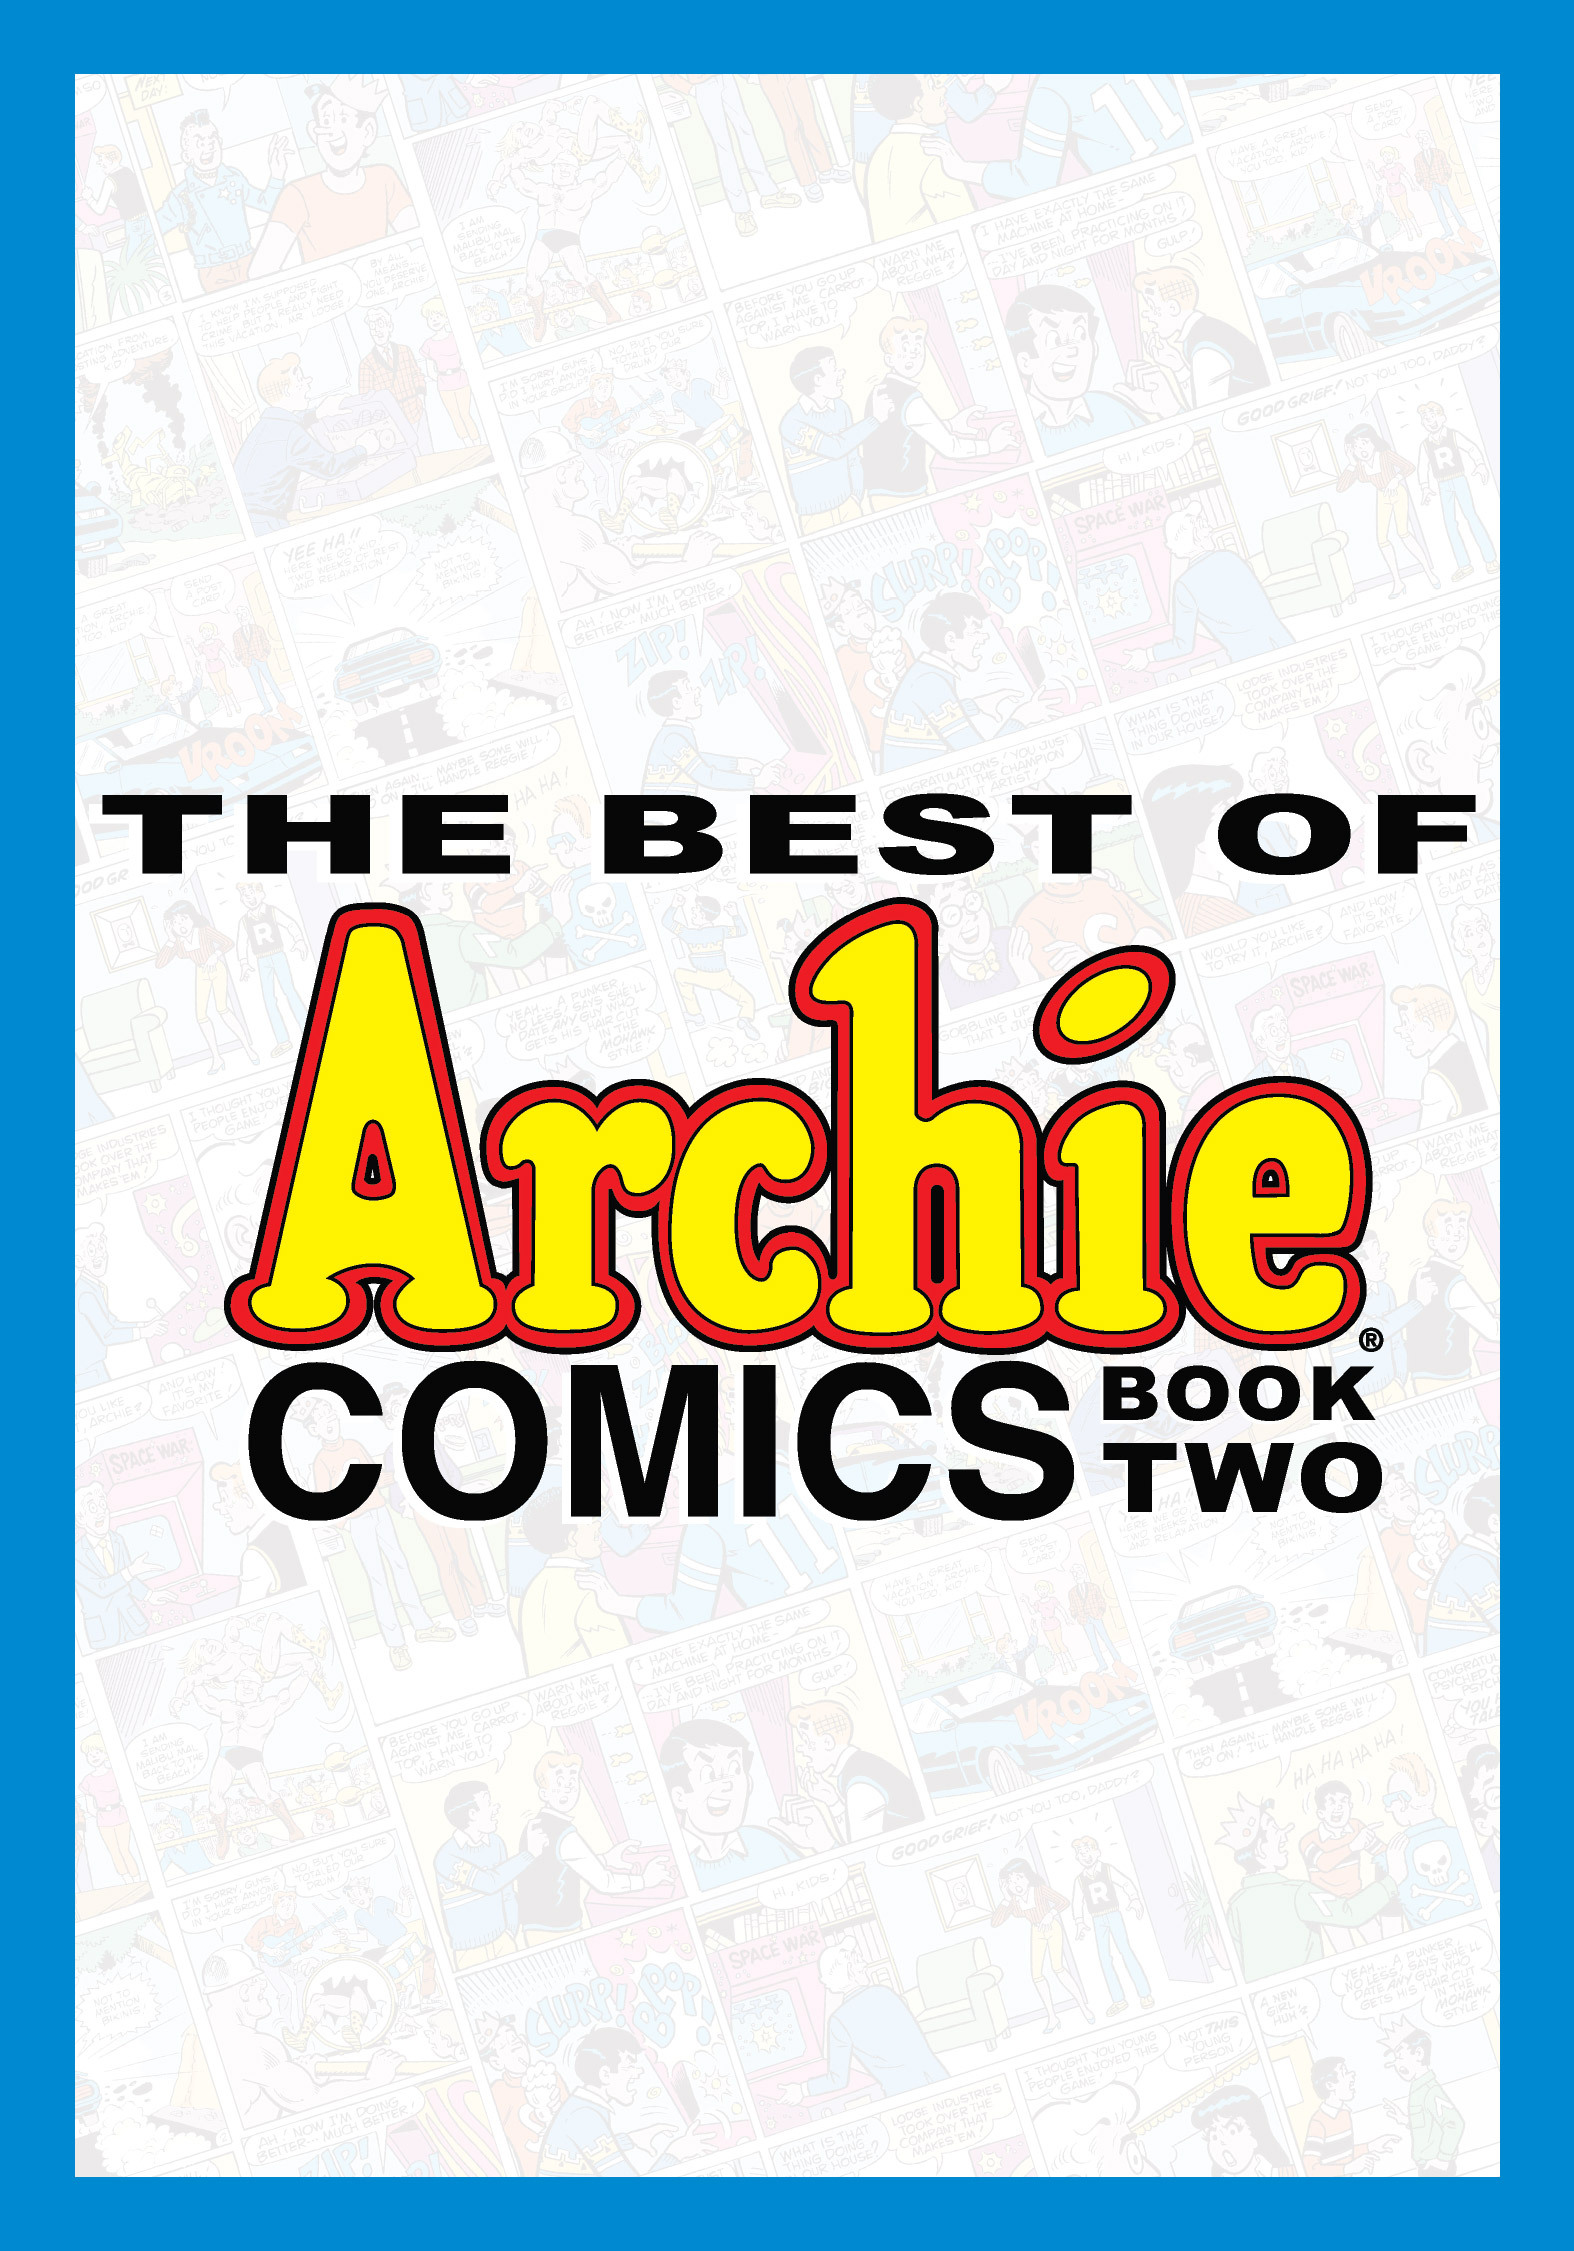 Read online The Best of Archie Comics comic -  Issue # TPB 2 (Part 1) - 3